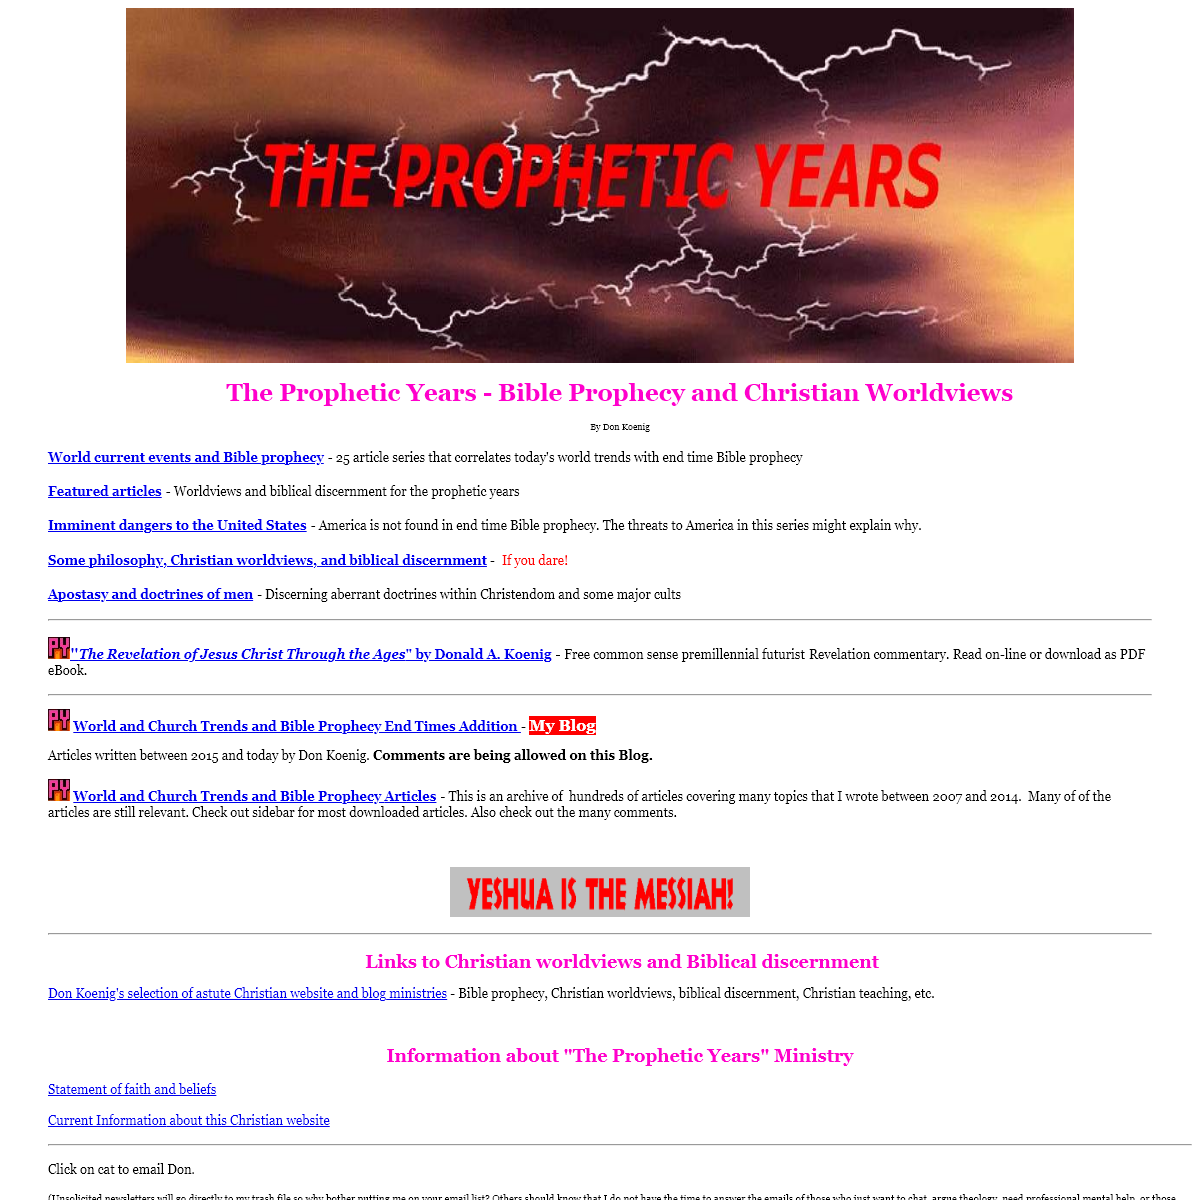 The Prophetic Years - Christian Worldviews and Bible prophecy